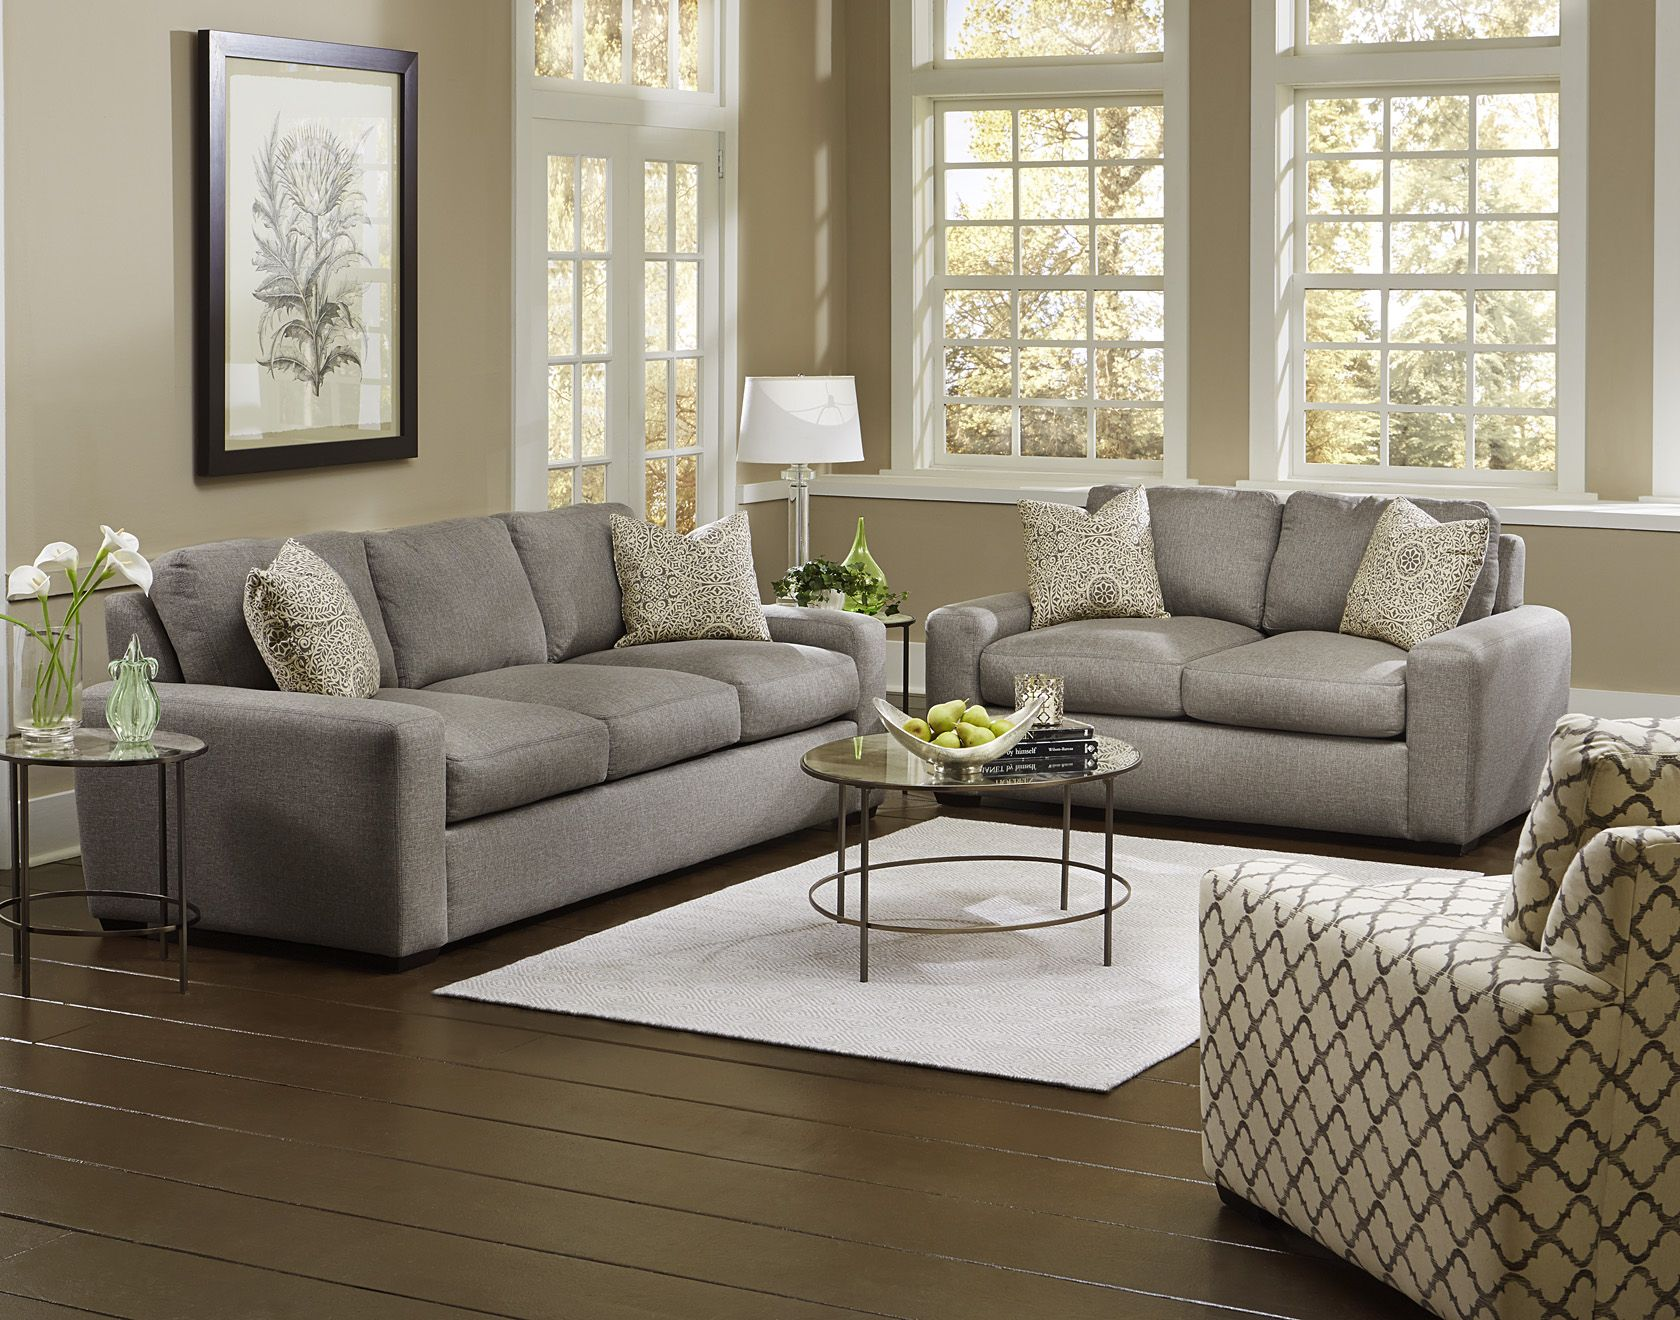 England Furniture Sofa 5 Sofa Colors That Won T Box You In